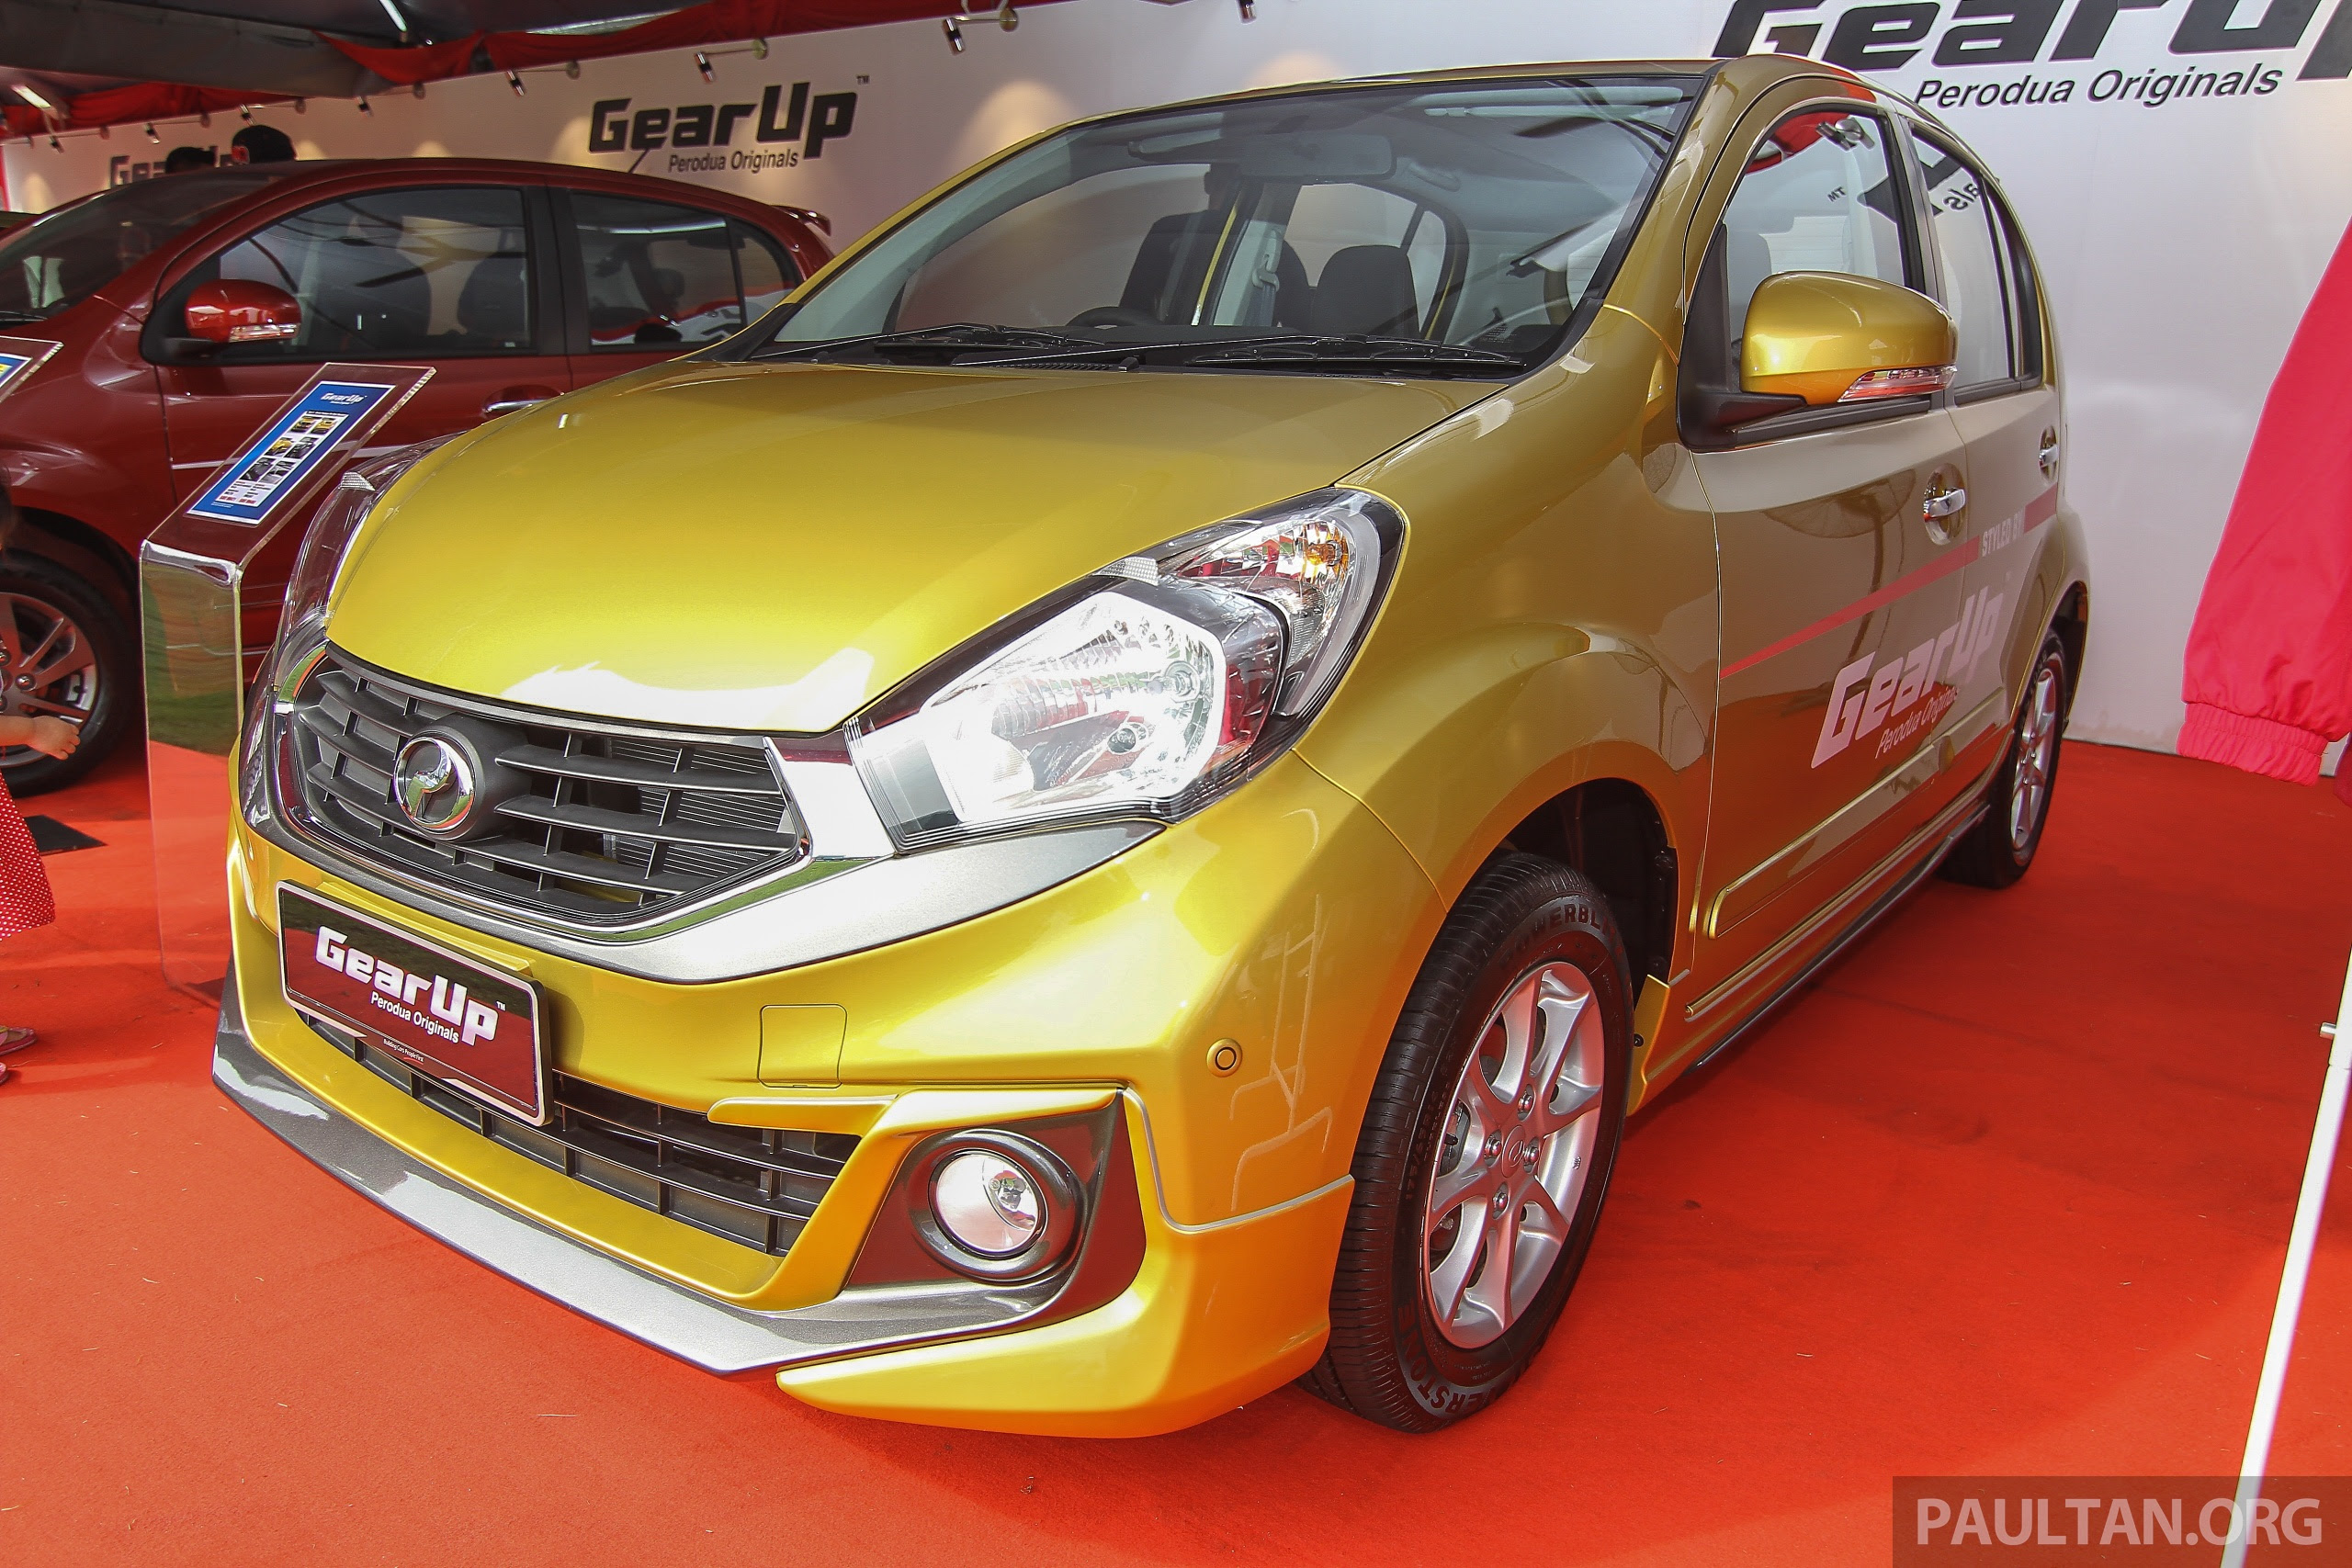 Perodua Myvi GearUp accessories - details and prices